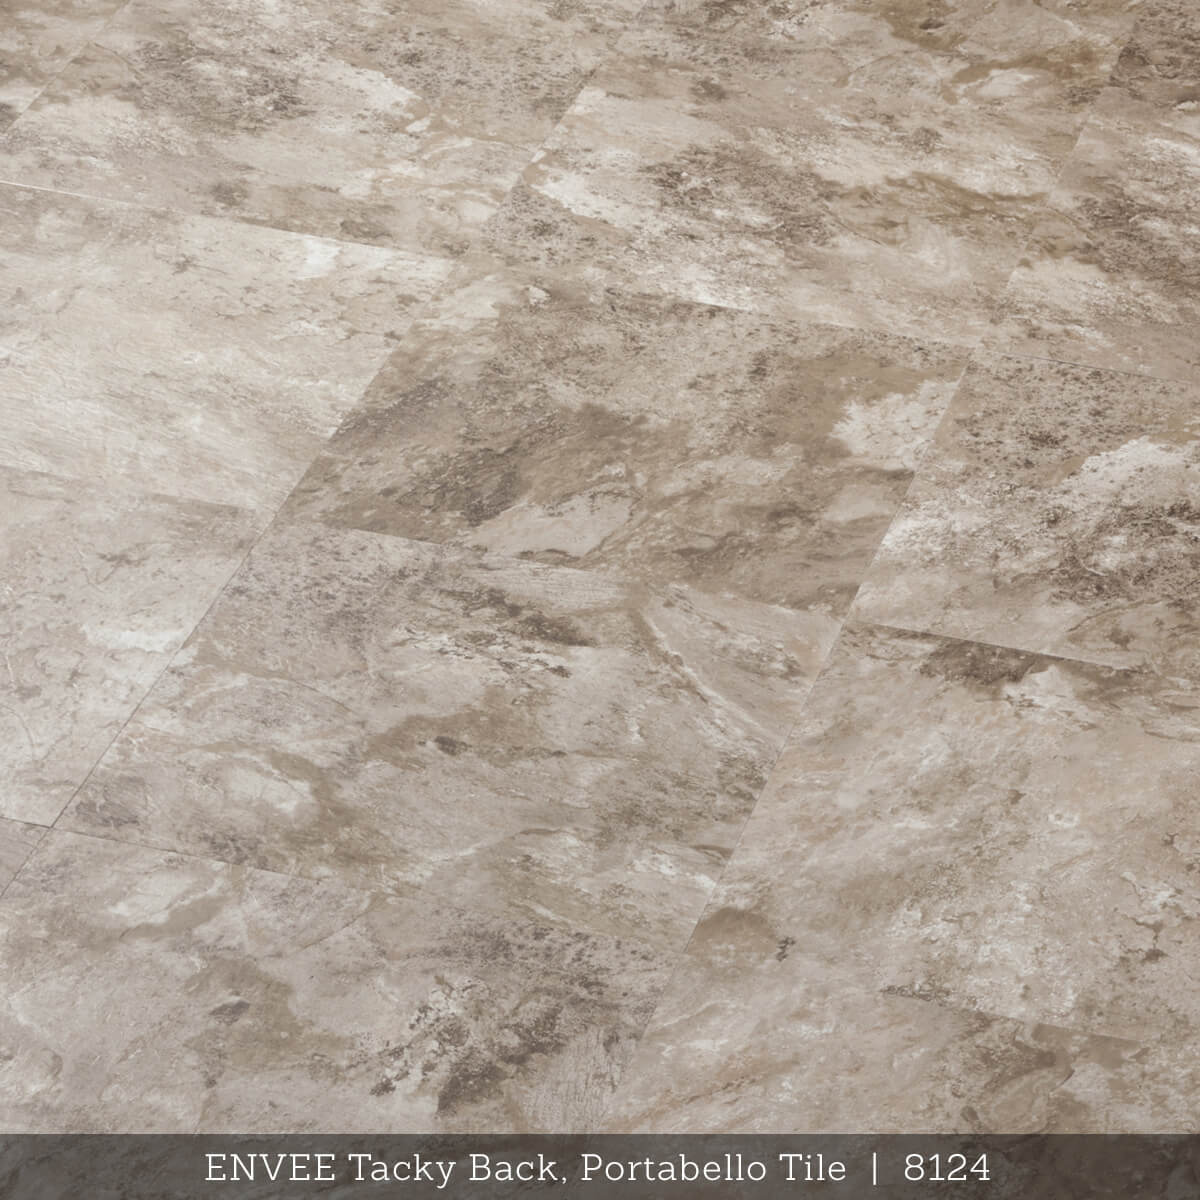 Envee Tacky Back, Portabello Tile